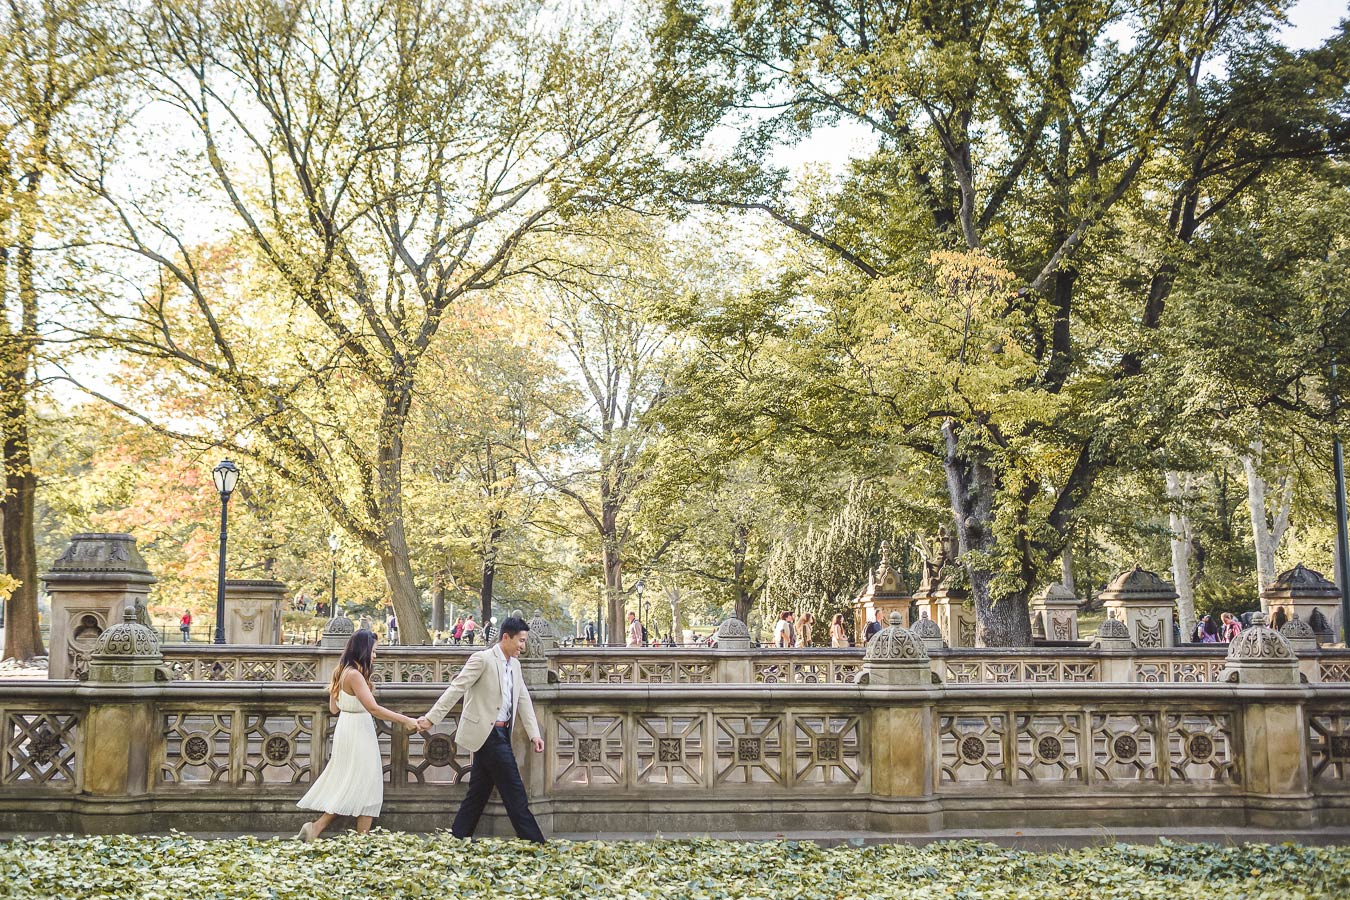 central-park-nyc-engagement-photographer-best0027.jpg